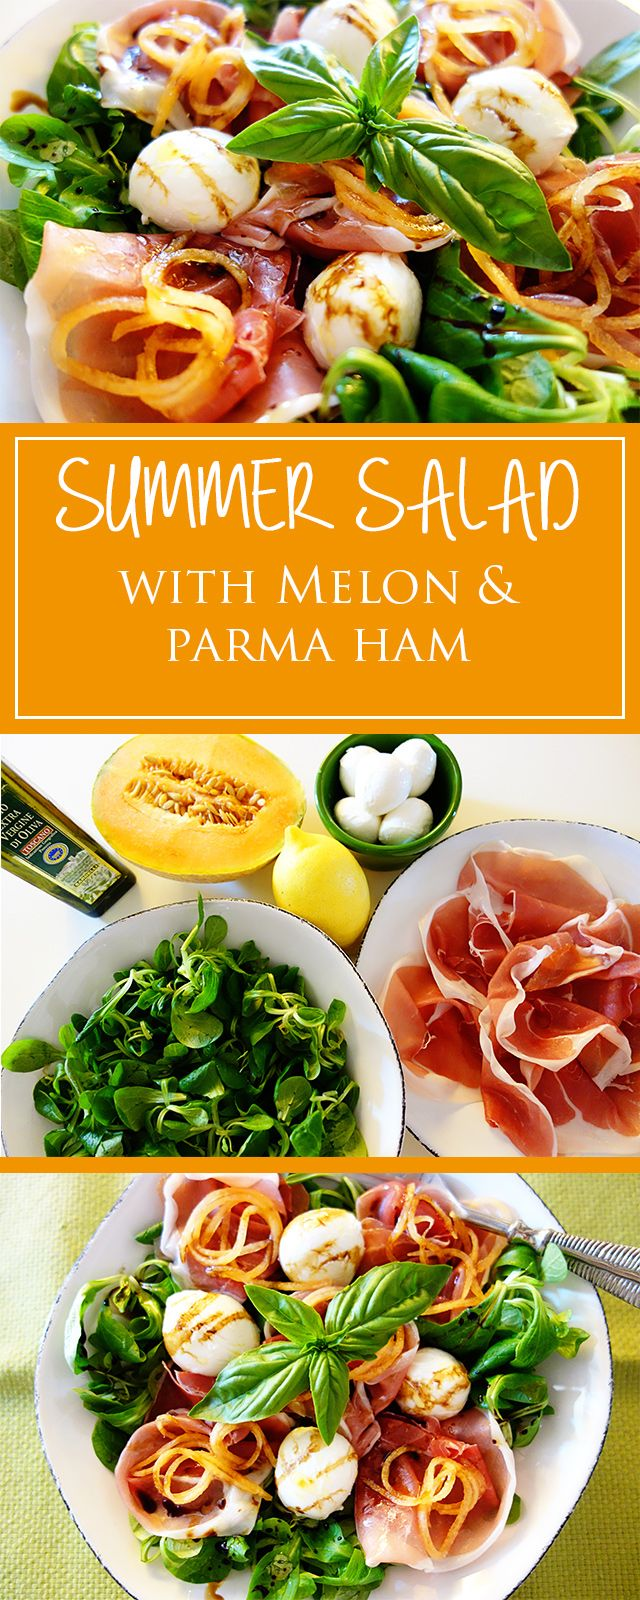 Summer salad with melon & parma ham - a simple & quick recipe for a light lunch/dinner. Moreover gluten-free, healthy & delicious!    cucina-con-amore.com